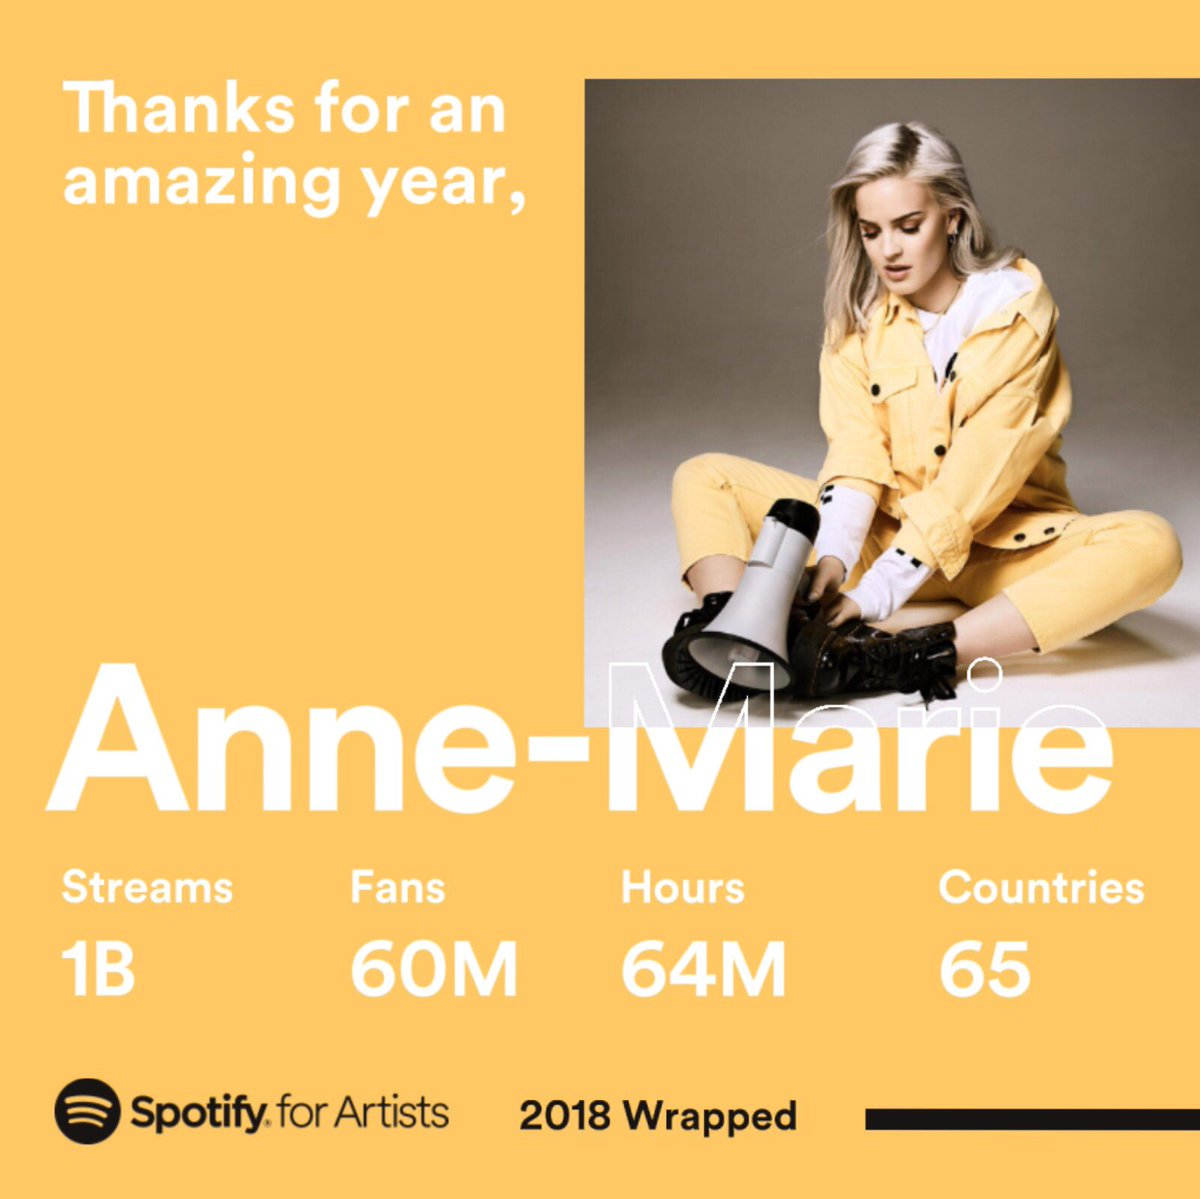 ANNE♥MAREINDEER's photo on #SpotifyWrapped2018